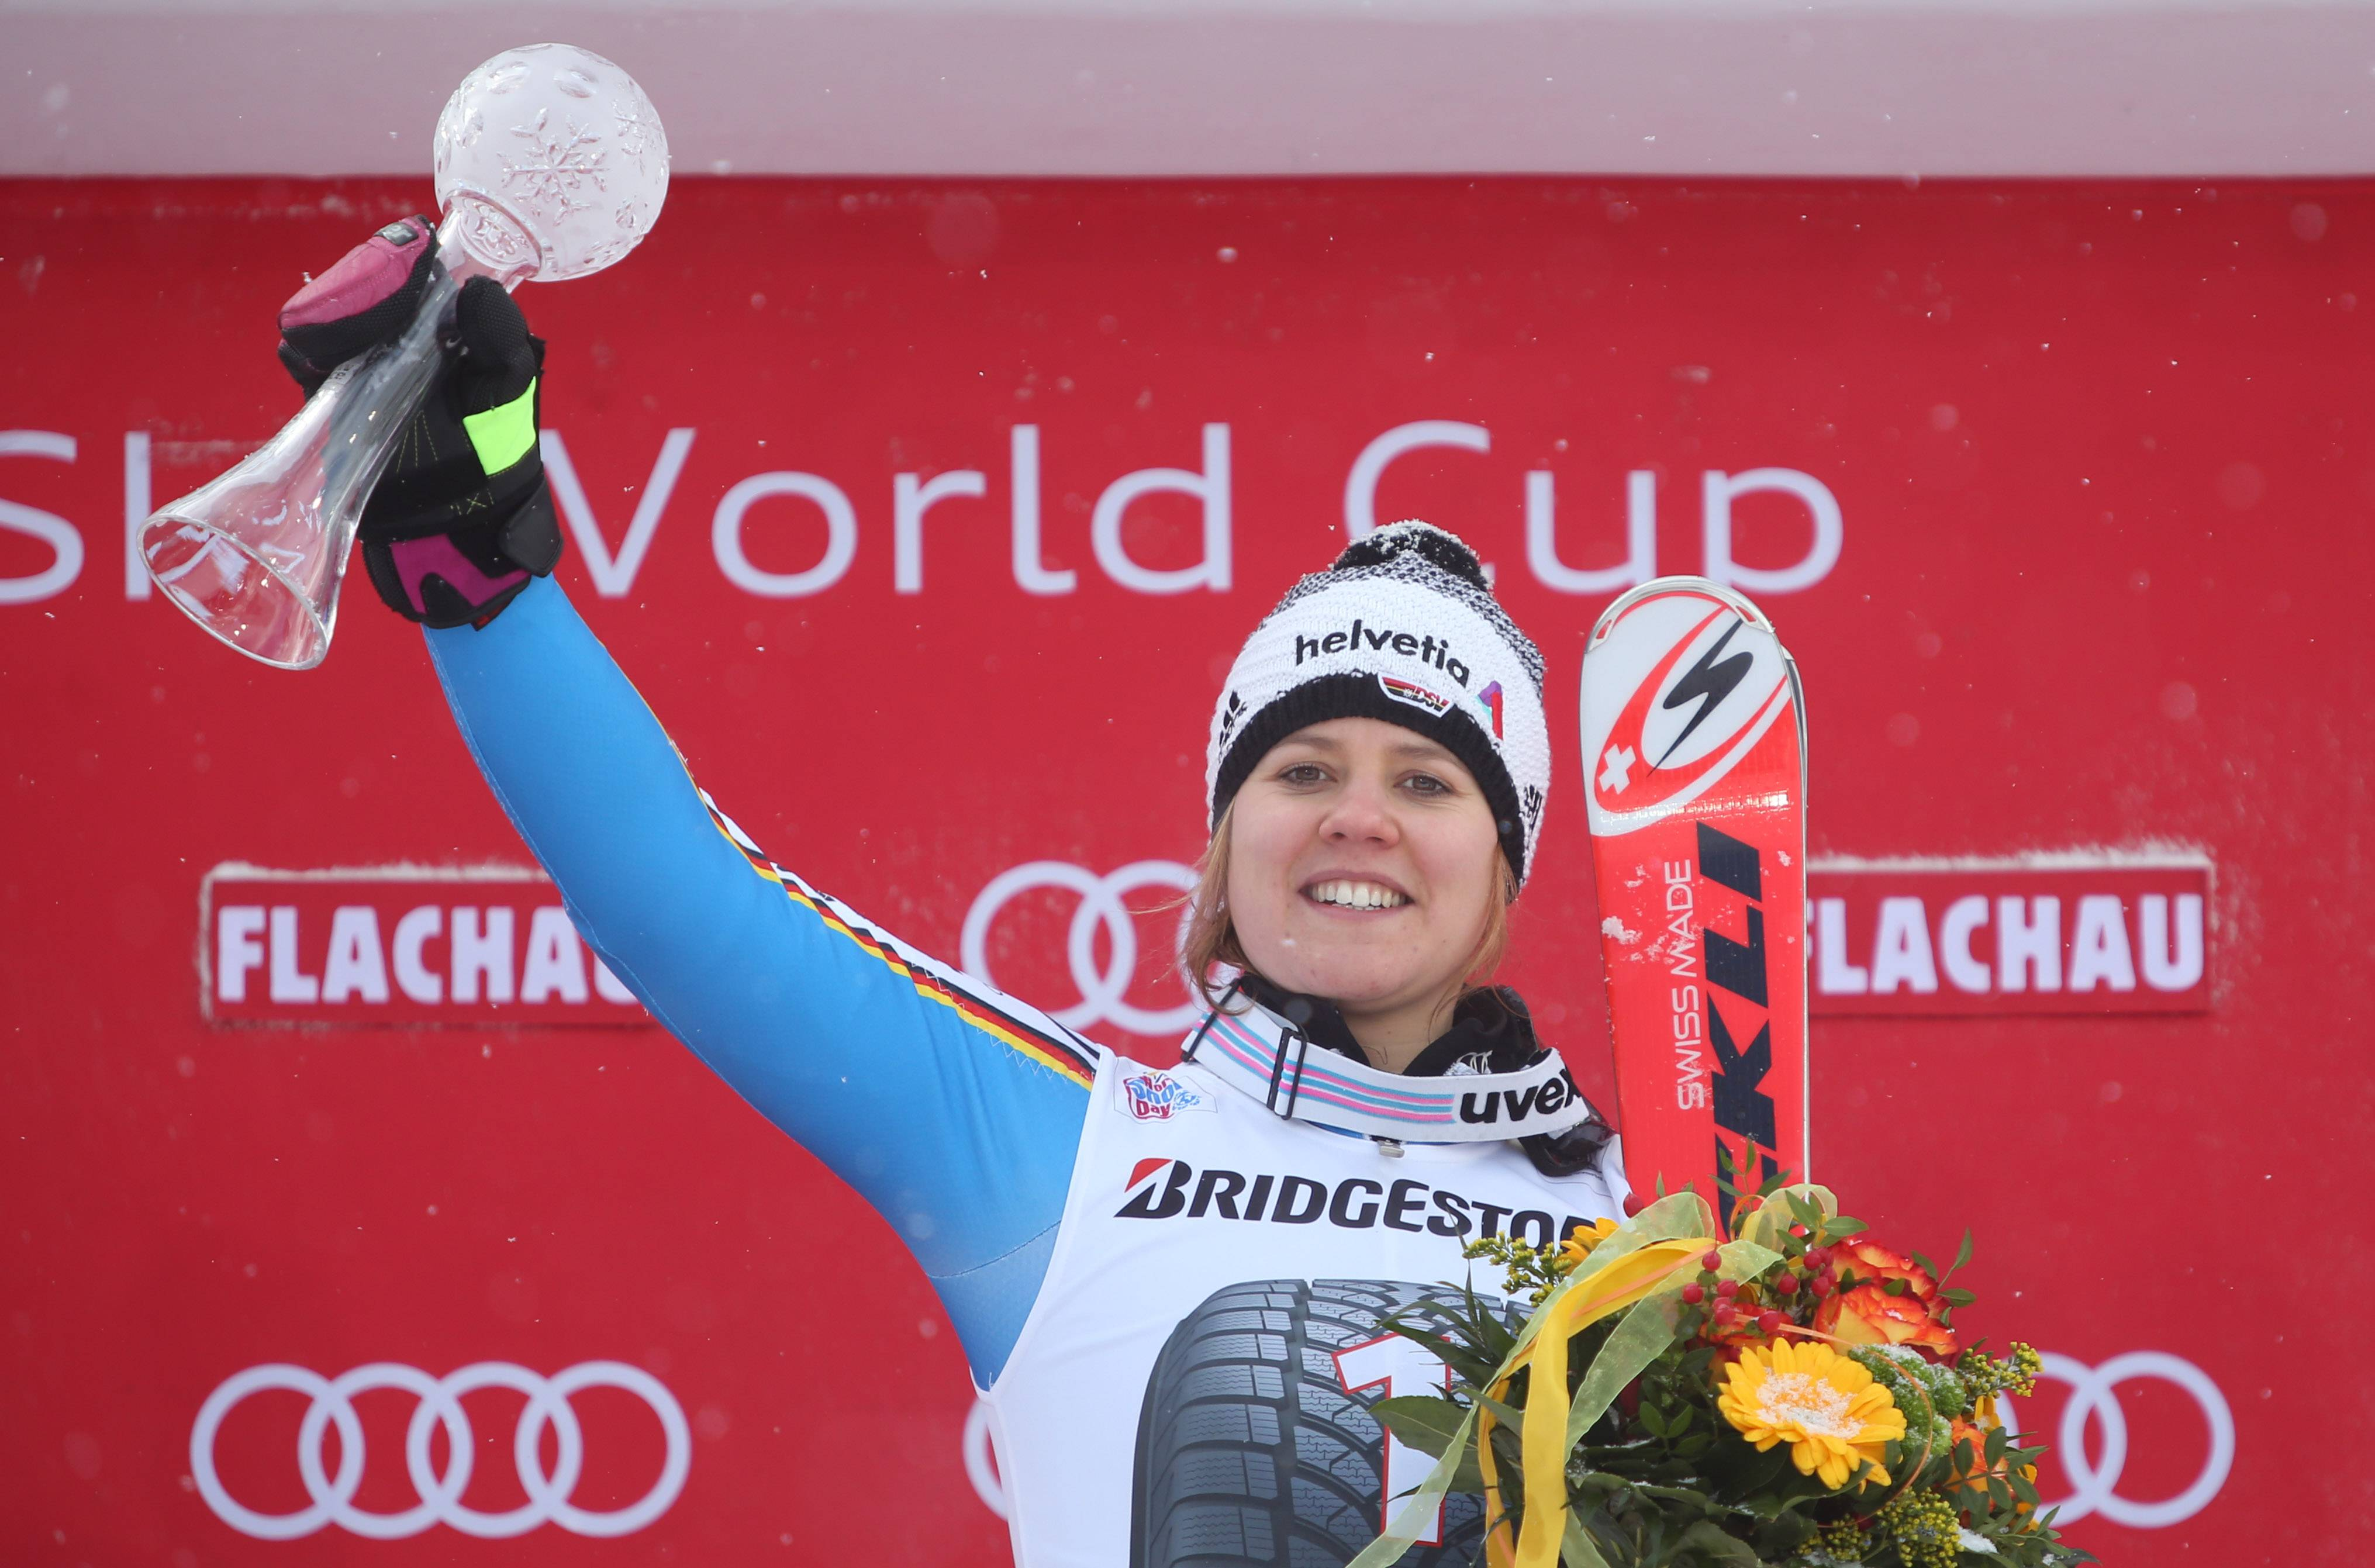 Themen Der Woche - Sport Bilder Des Tages - SPORT ALPINE SKIING - FIS WC Flachau FLACHAU,AUSTRIA,17.JAN.16 - ALPINE SKIING - FIS World Cup, Giant Slalom, Ladies, Award Ceremony. Image Shows Viktoria Rebensburg (GER). Keywords: Stoeckli, Trophy. PUBLICATIONxINxGERxHUNxONLY GEPAxpictures/xAndreasxPranter  Topics The Week Sports Images The Day Sports Alpine Skiing FIS WC Flachau Flachau Austria 17 Jan 16 Alpine Skiing FIS World Cup Giant Slalom Ladies Award Ceremony Image Shows Viktoria Vine Castle Ger Keywords Stoeckli Trophy PUBLICATIONxINxGERxHUNxONLY GEPAxpictures XAndreasxPranter